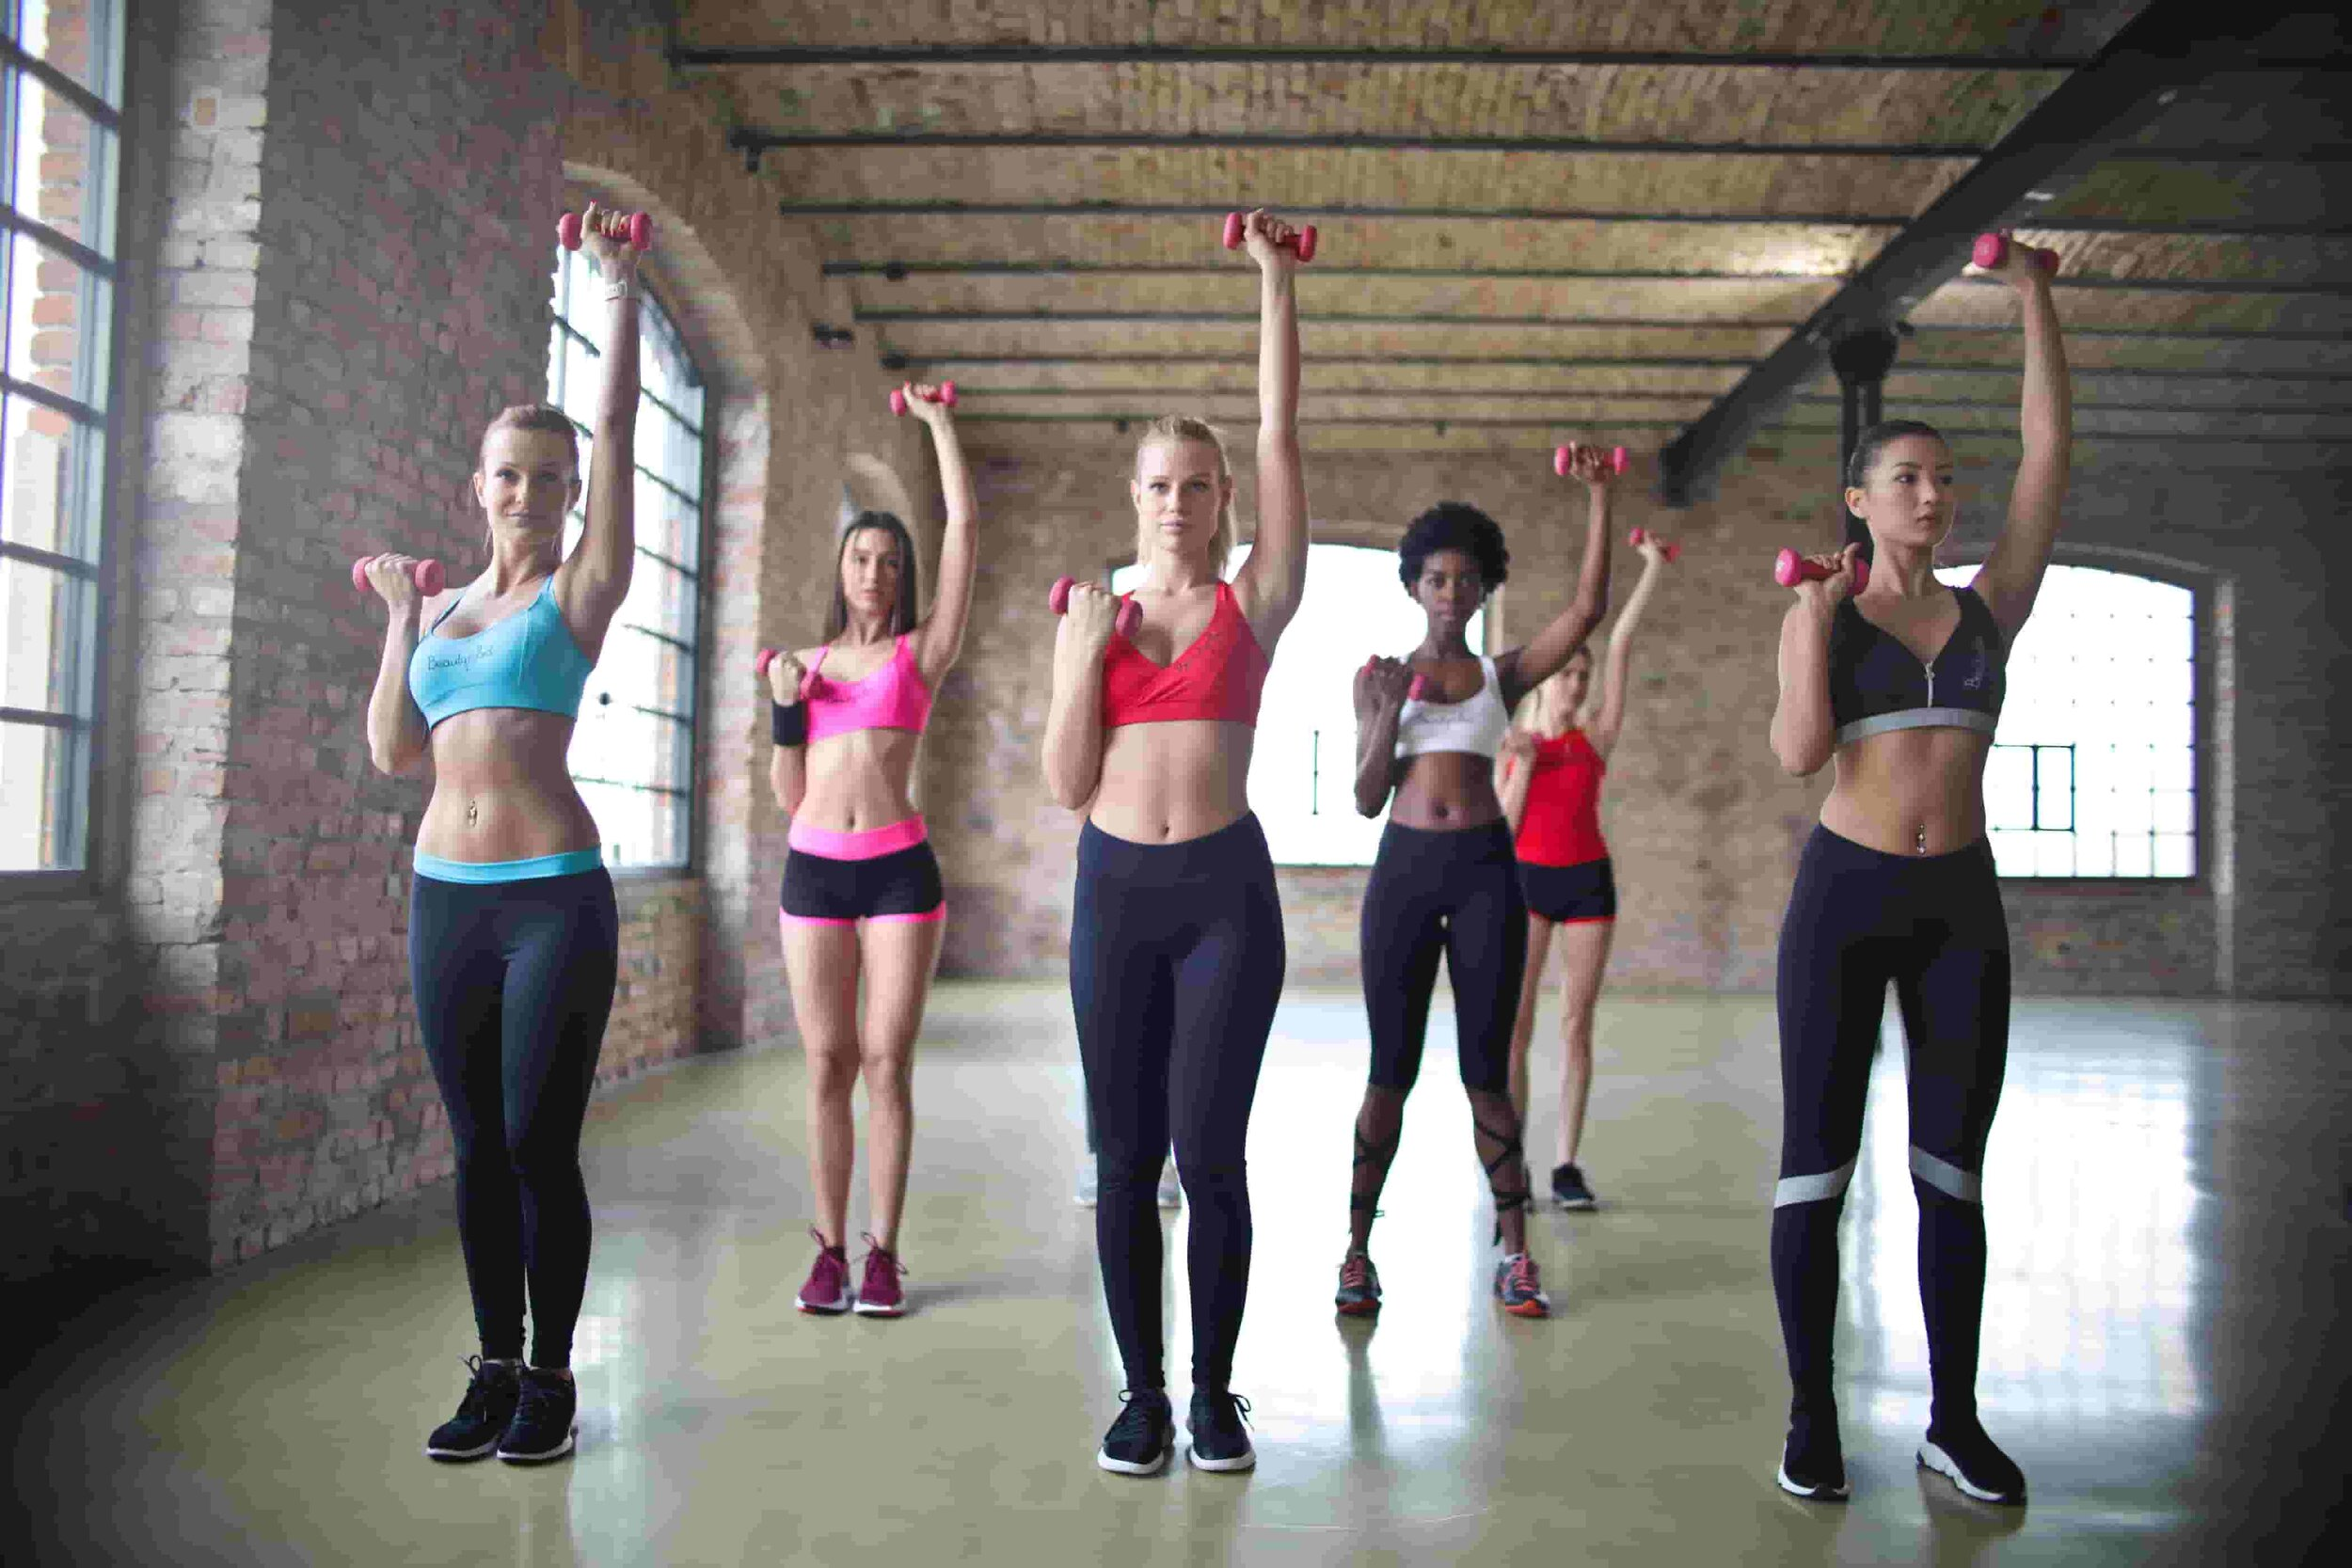 Take a group fitness class to encourage you to work out more.